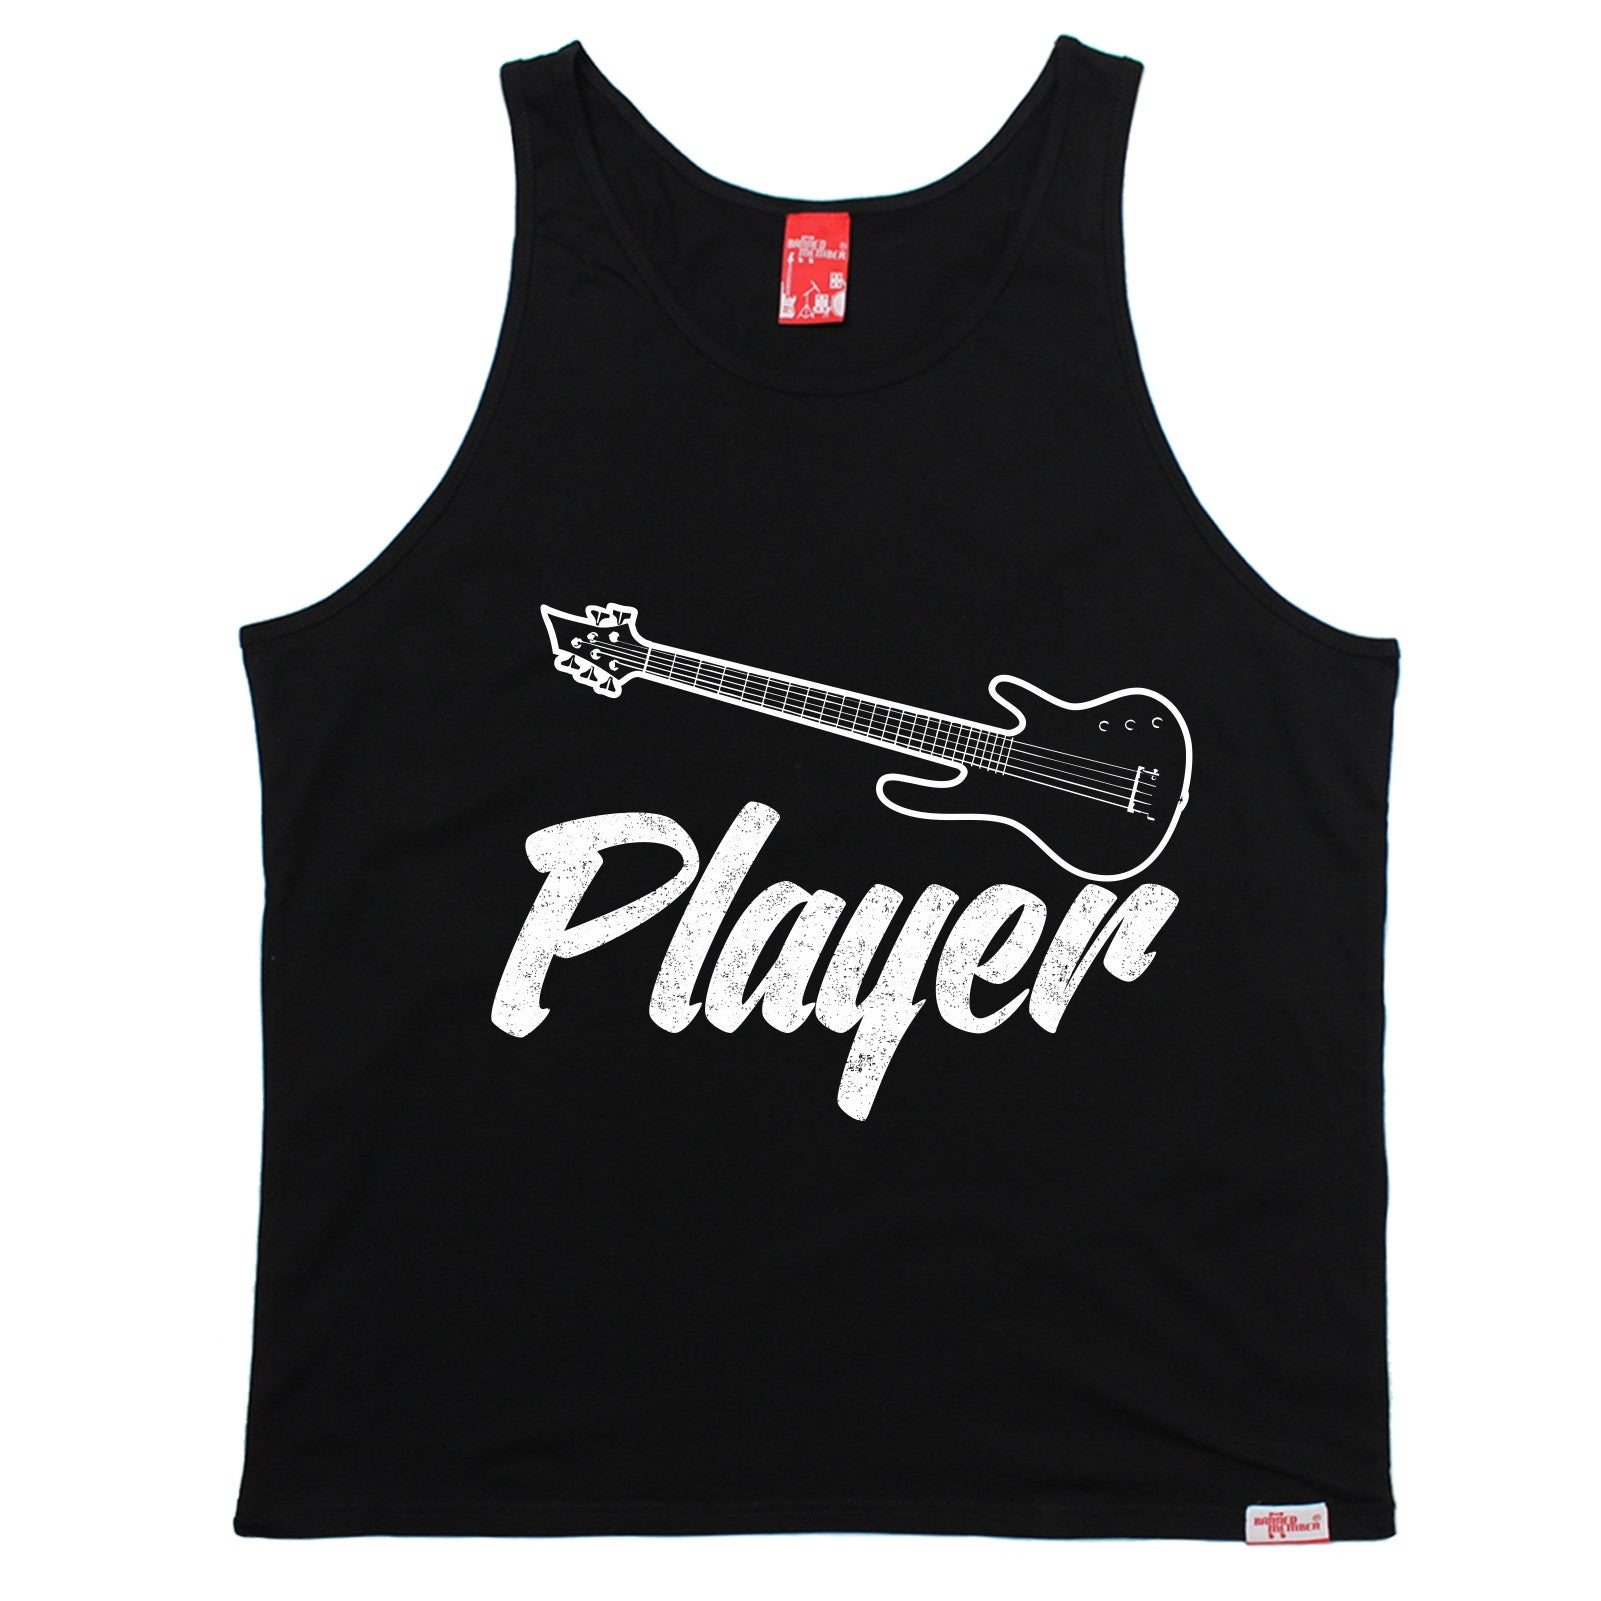 Bass Player Banned Member UNI VEST Birthday Gift Fashion